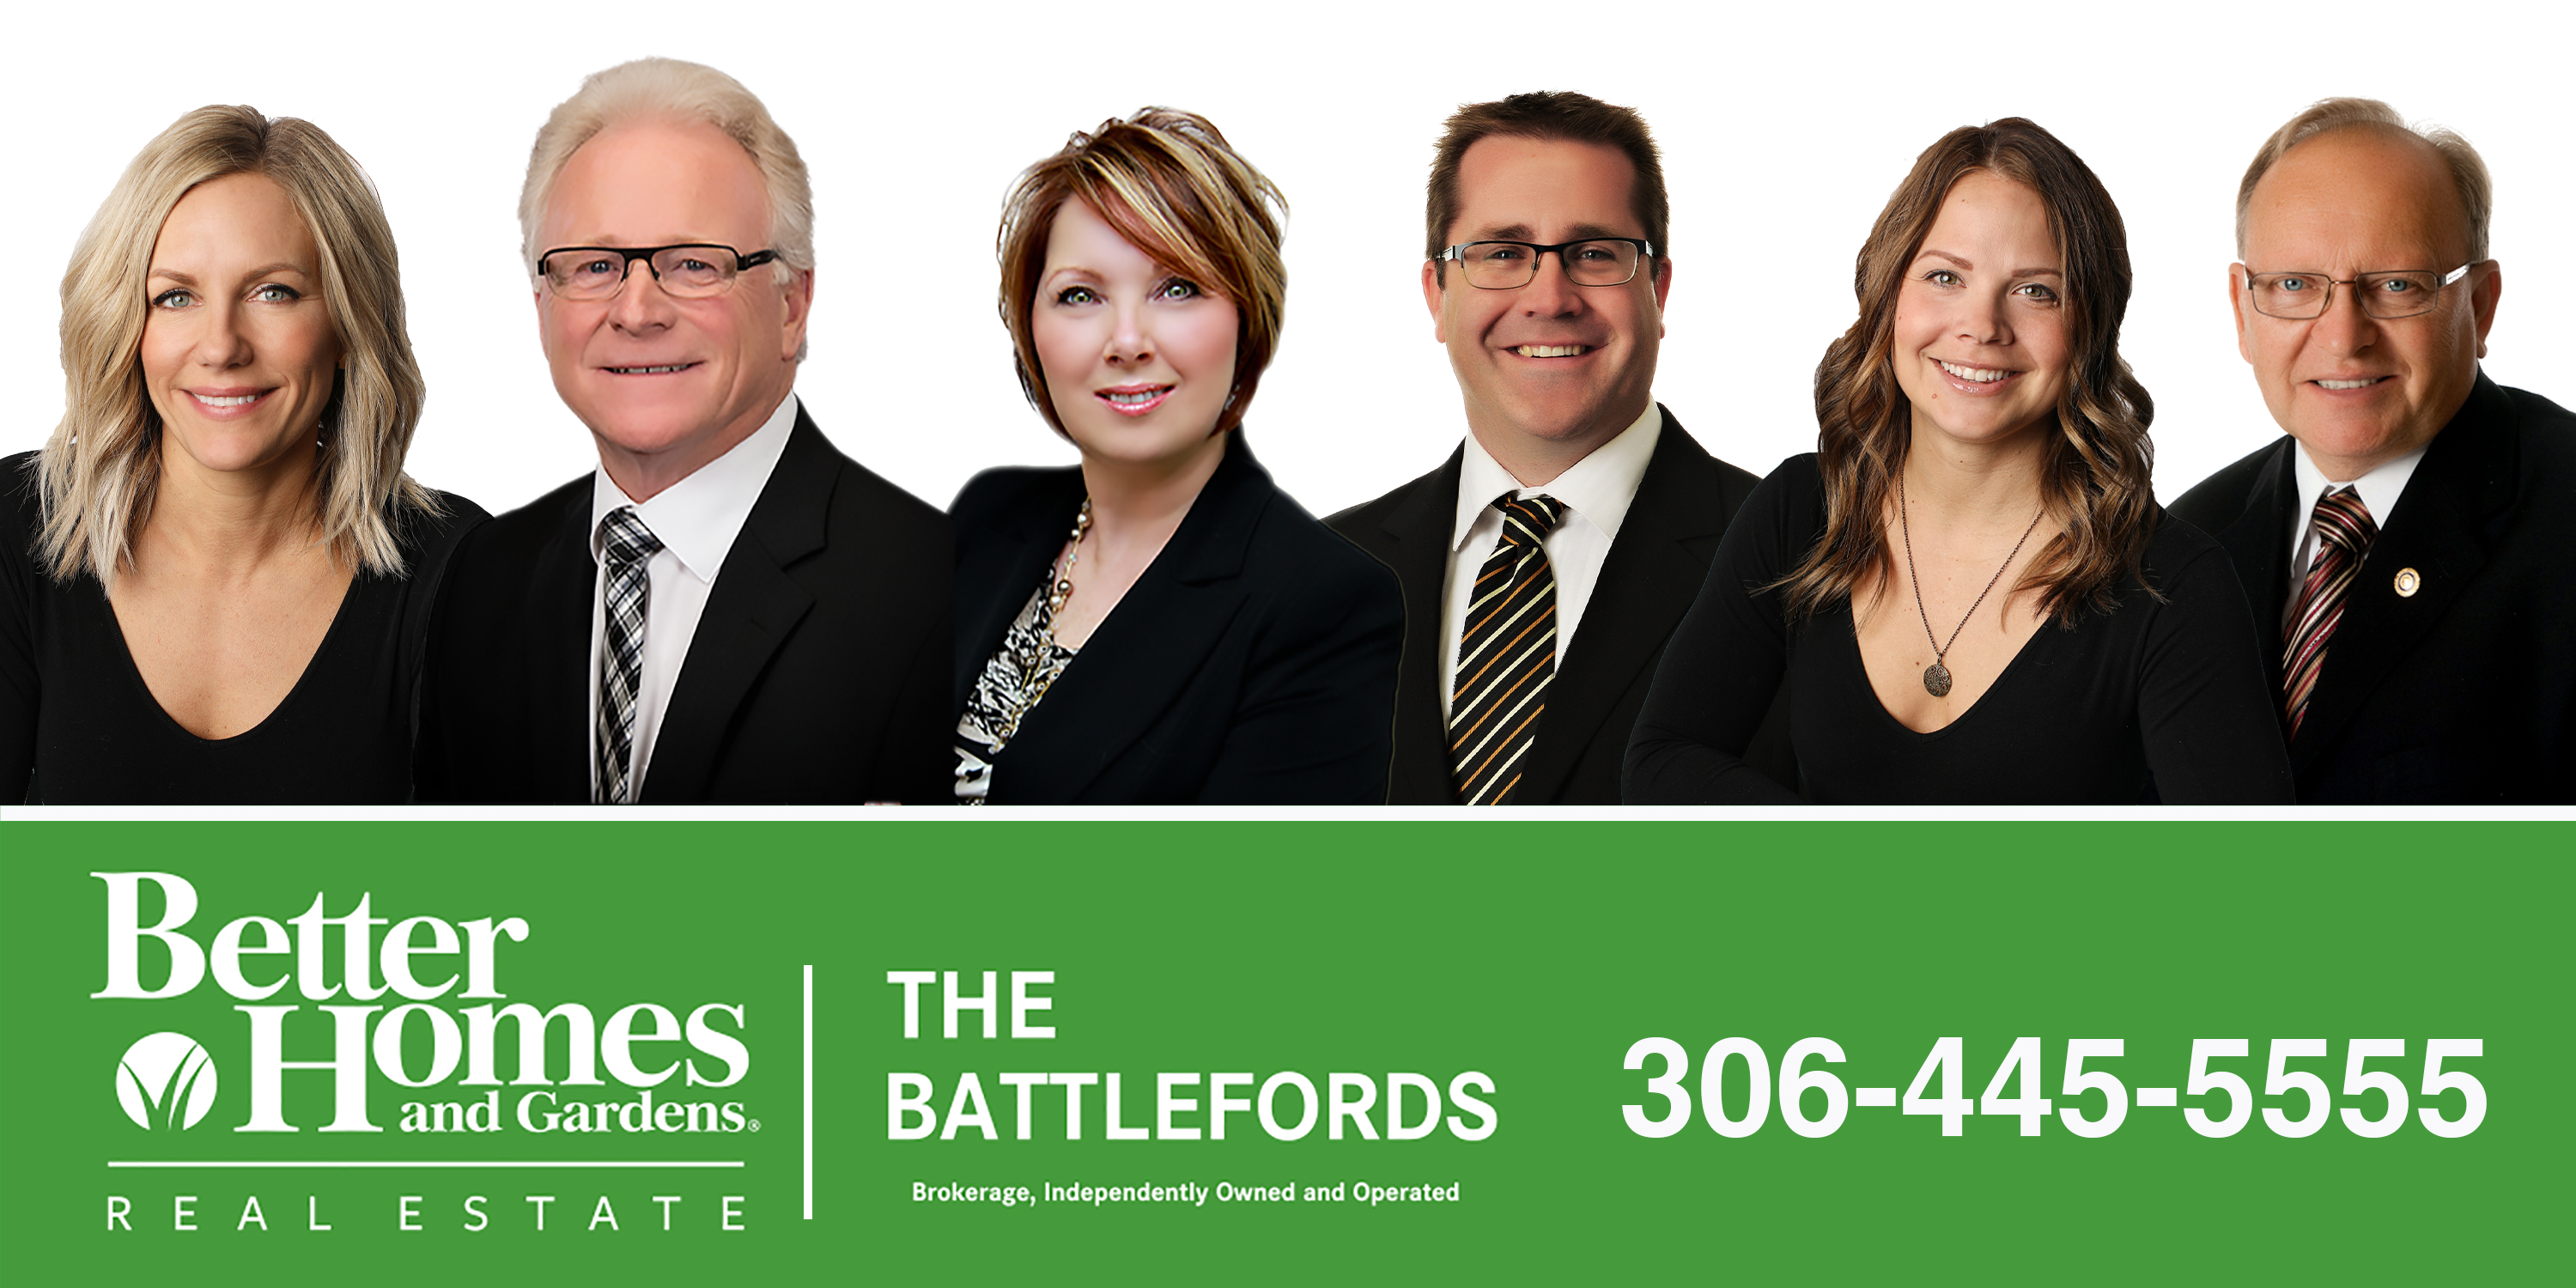 Better Homes and Gardens Real Estate the Battlefords